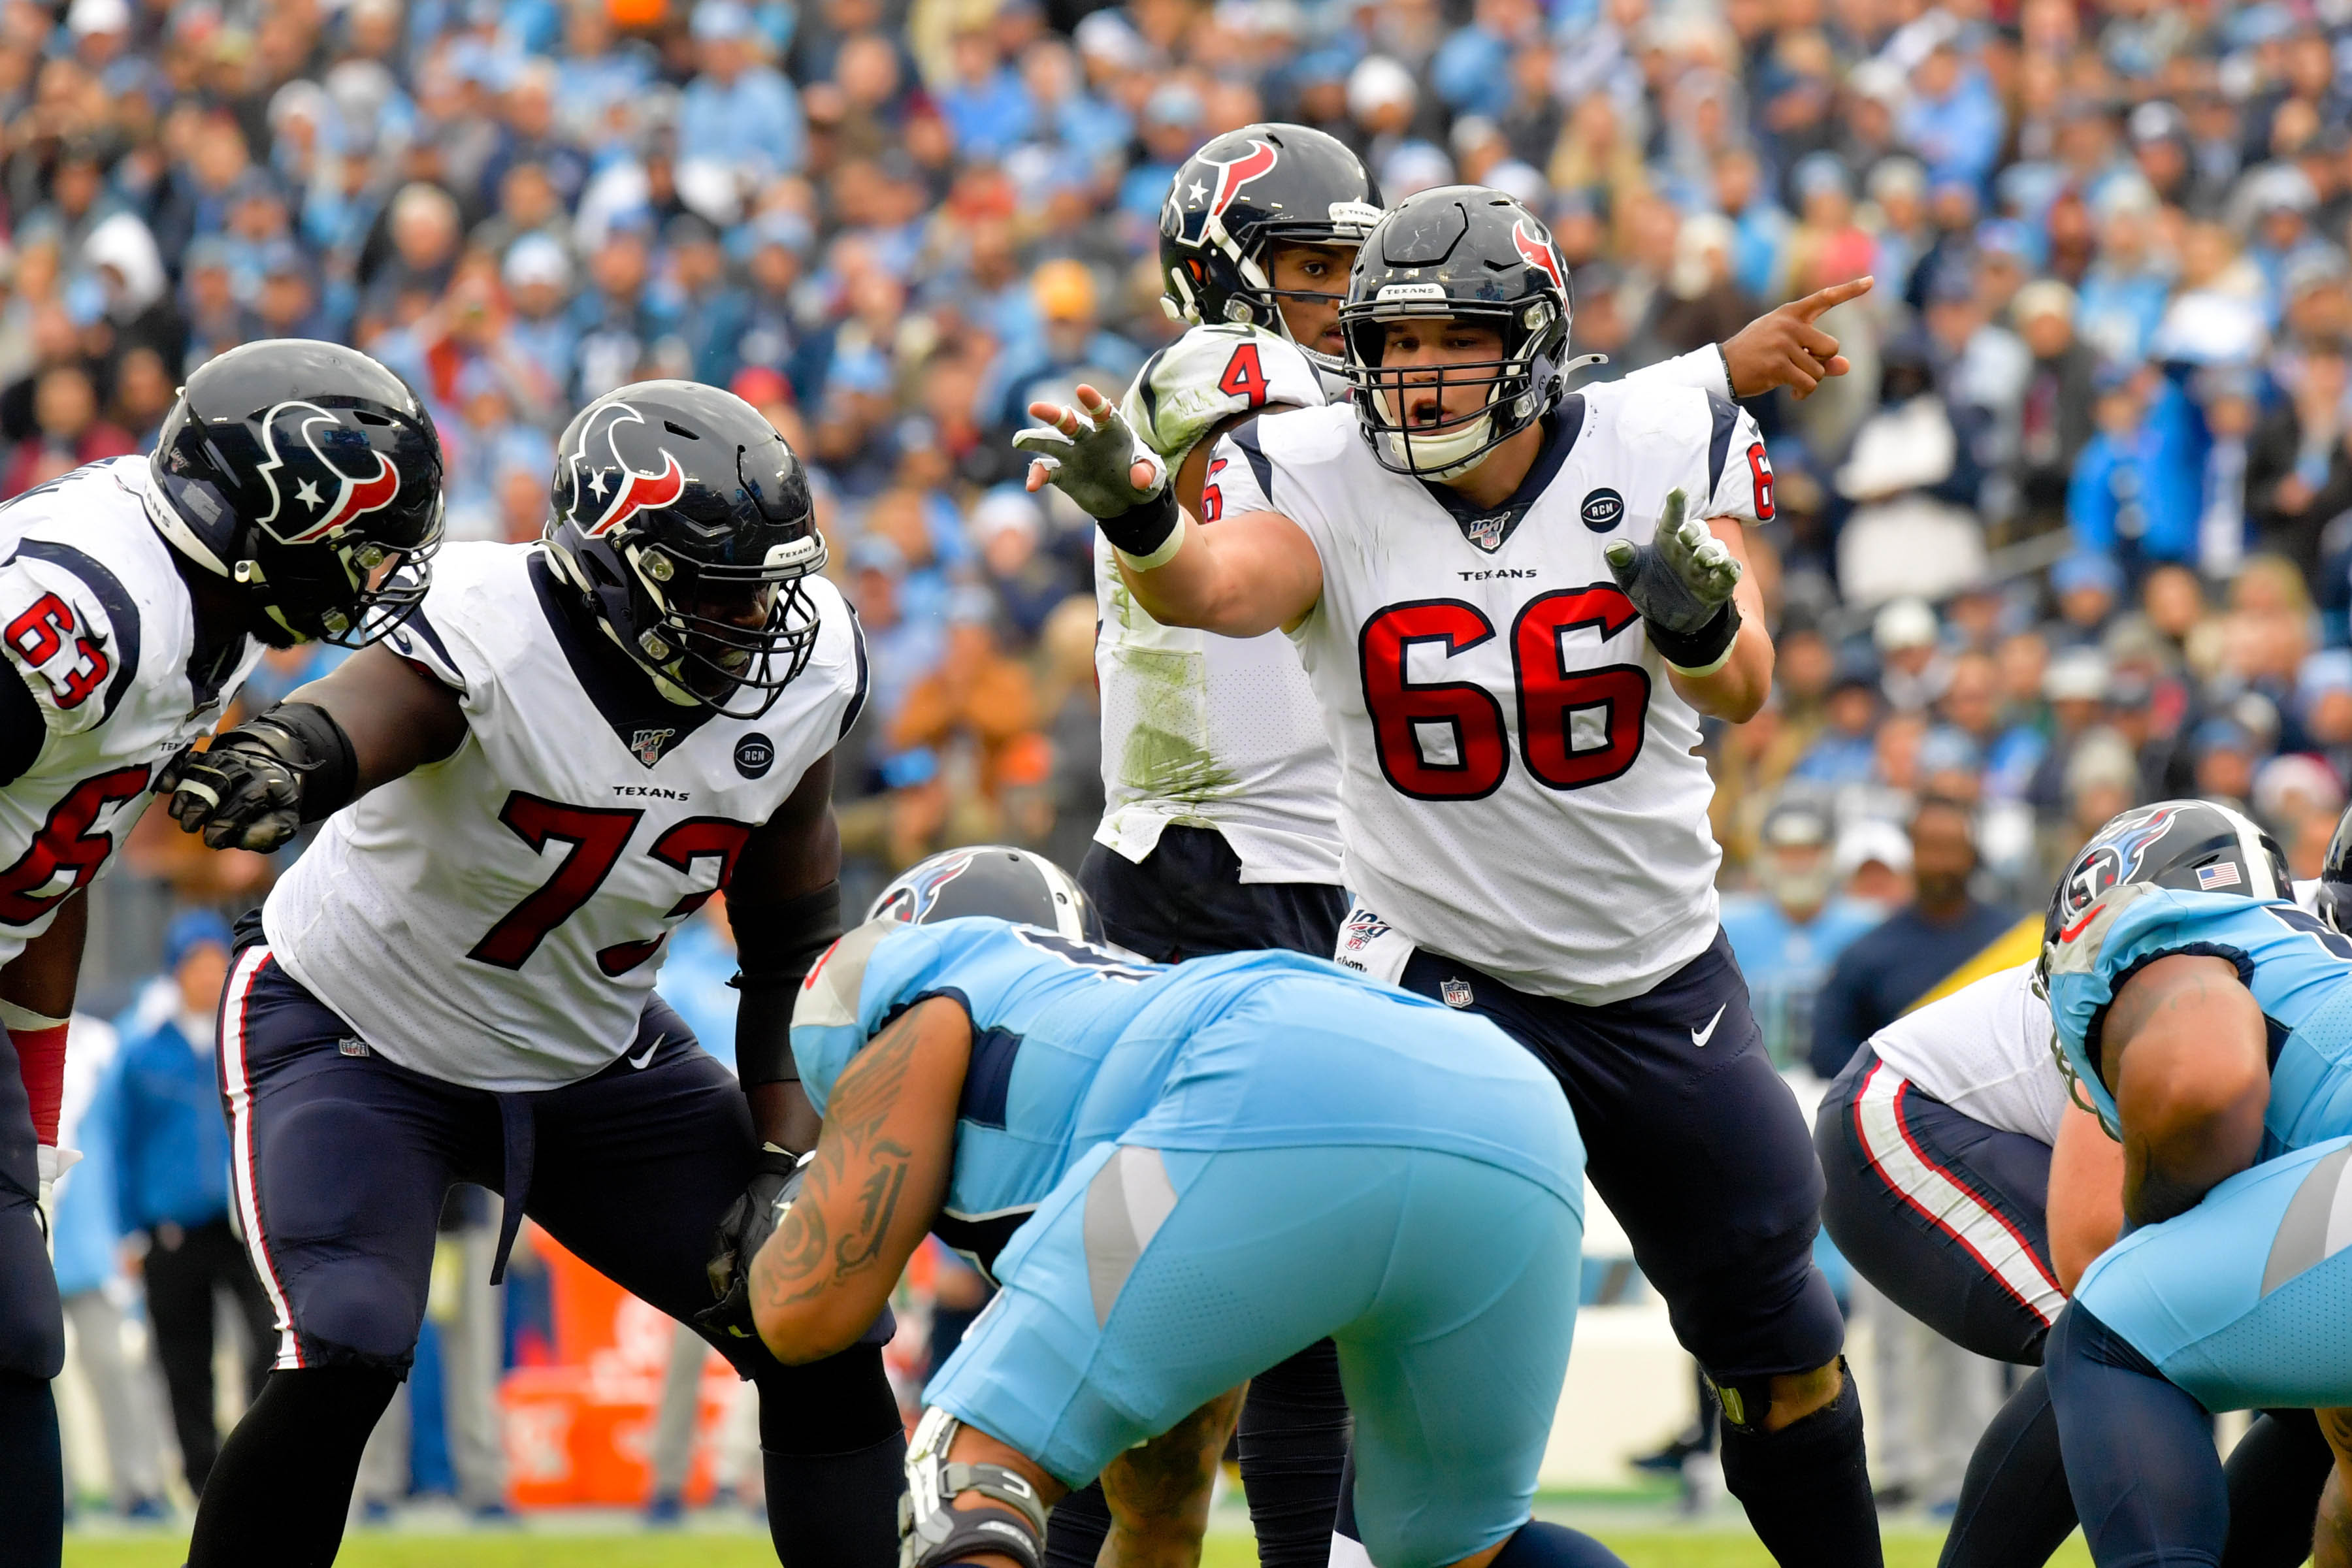 NFL: Houston Texans at Tennessee Titans